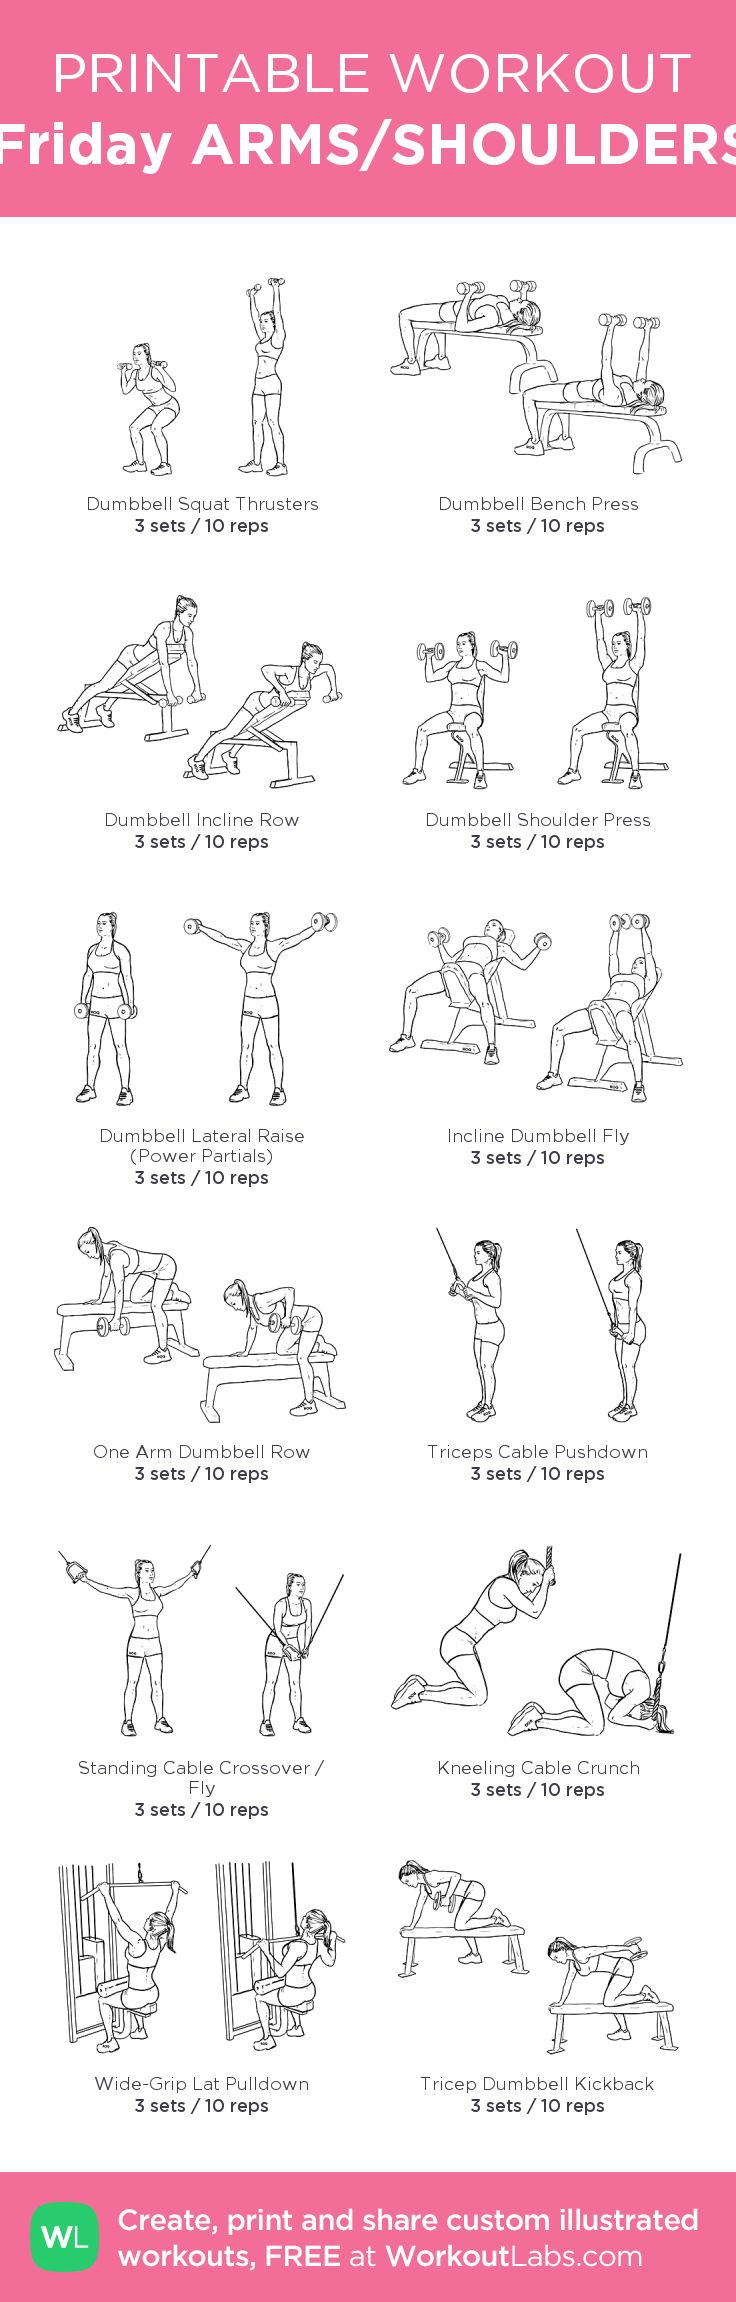 Friday ARMS/SHOULDERS: my custom printable workout by @WorkoutLabs #workoutlabs #customworkout